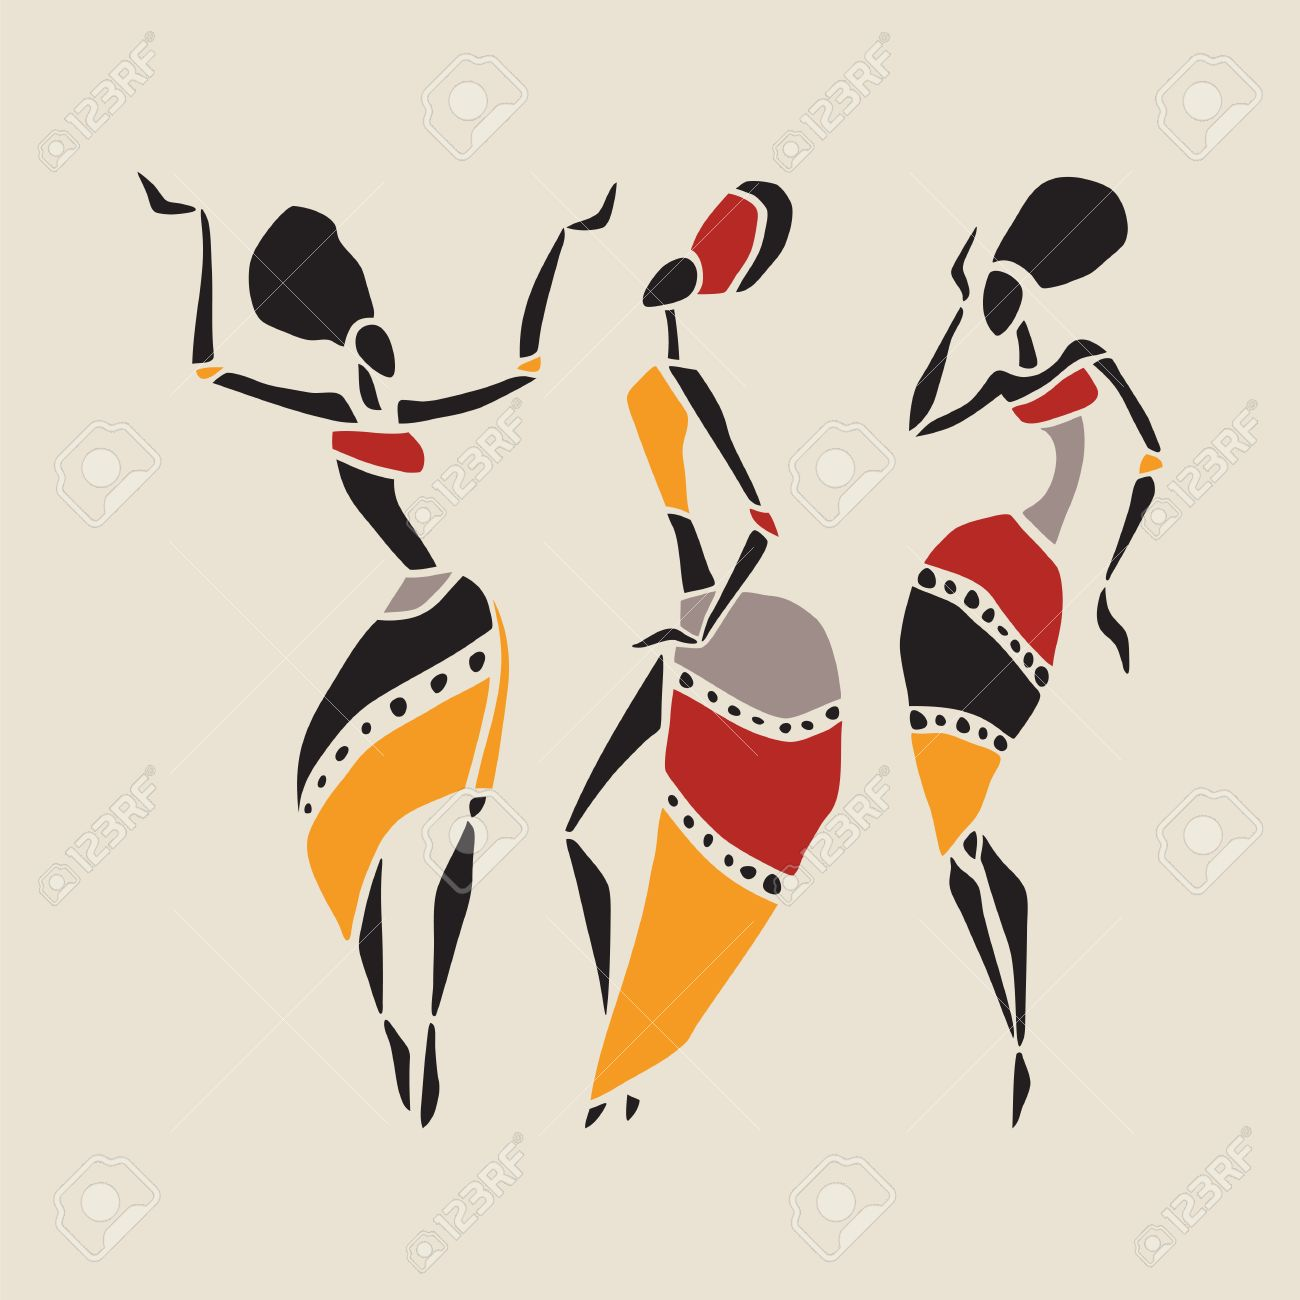 African dancers silhouette set. - 36752020